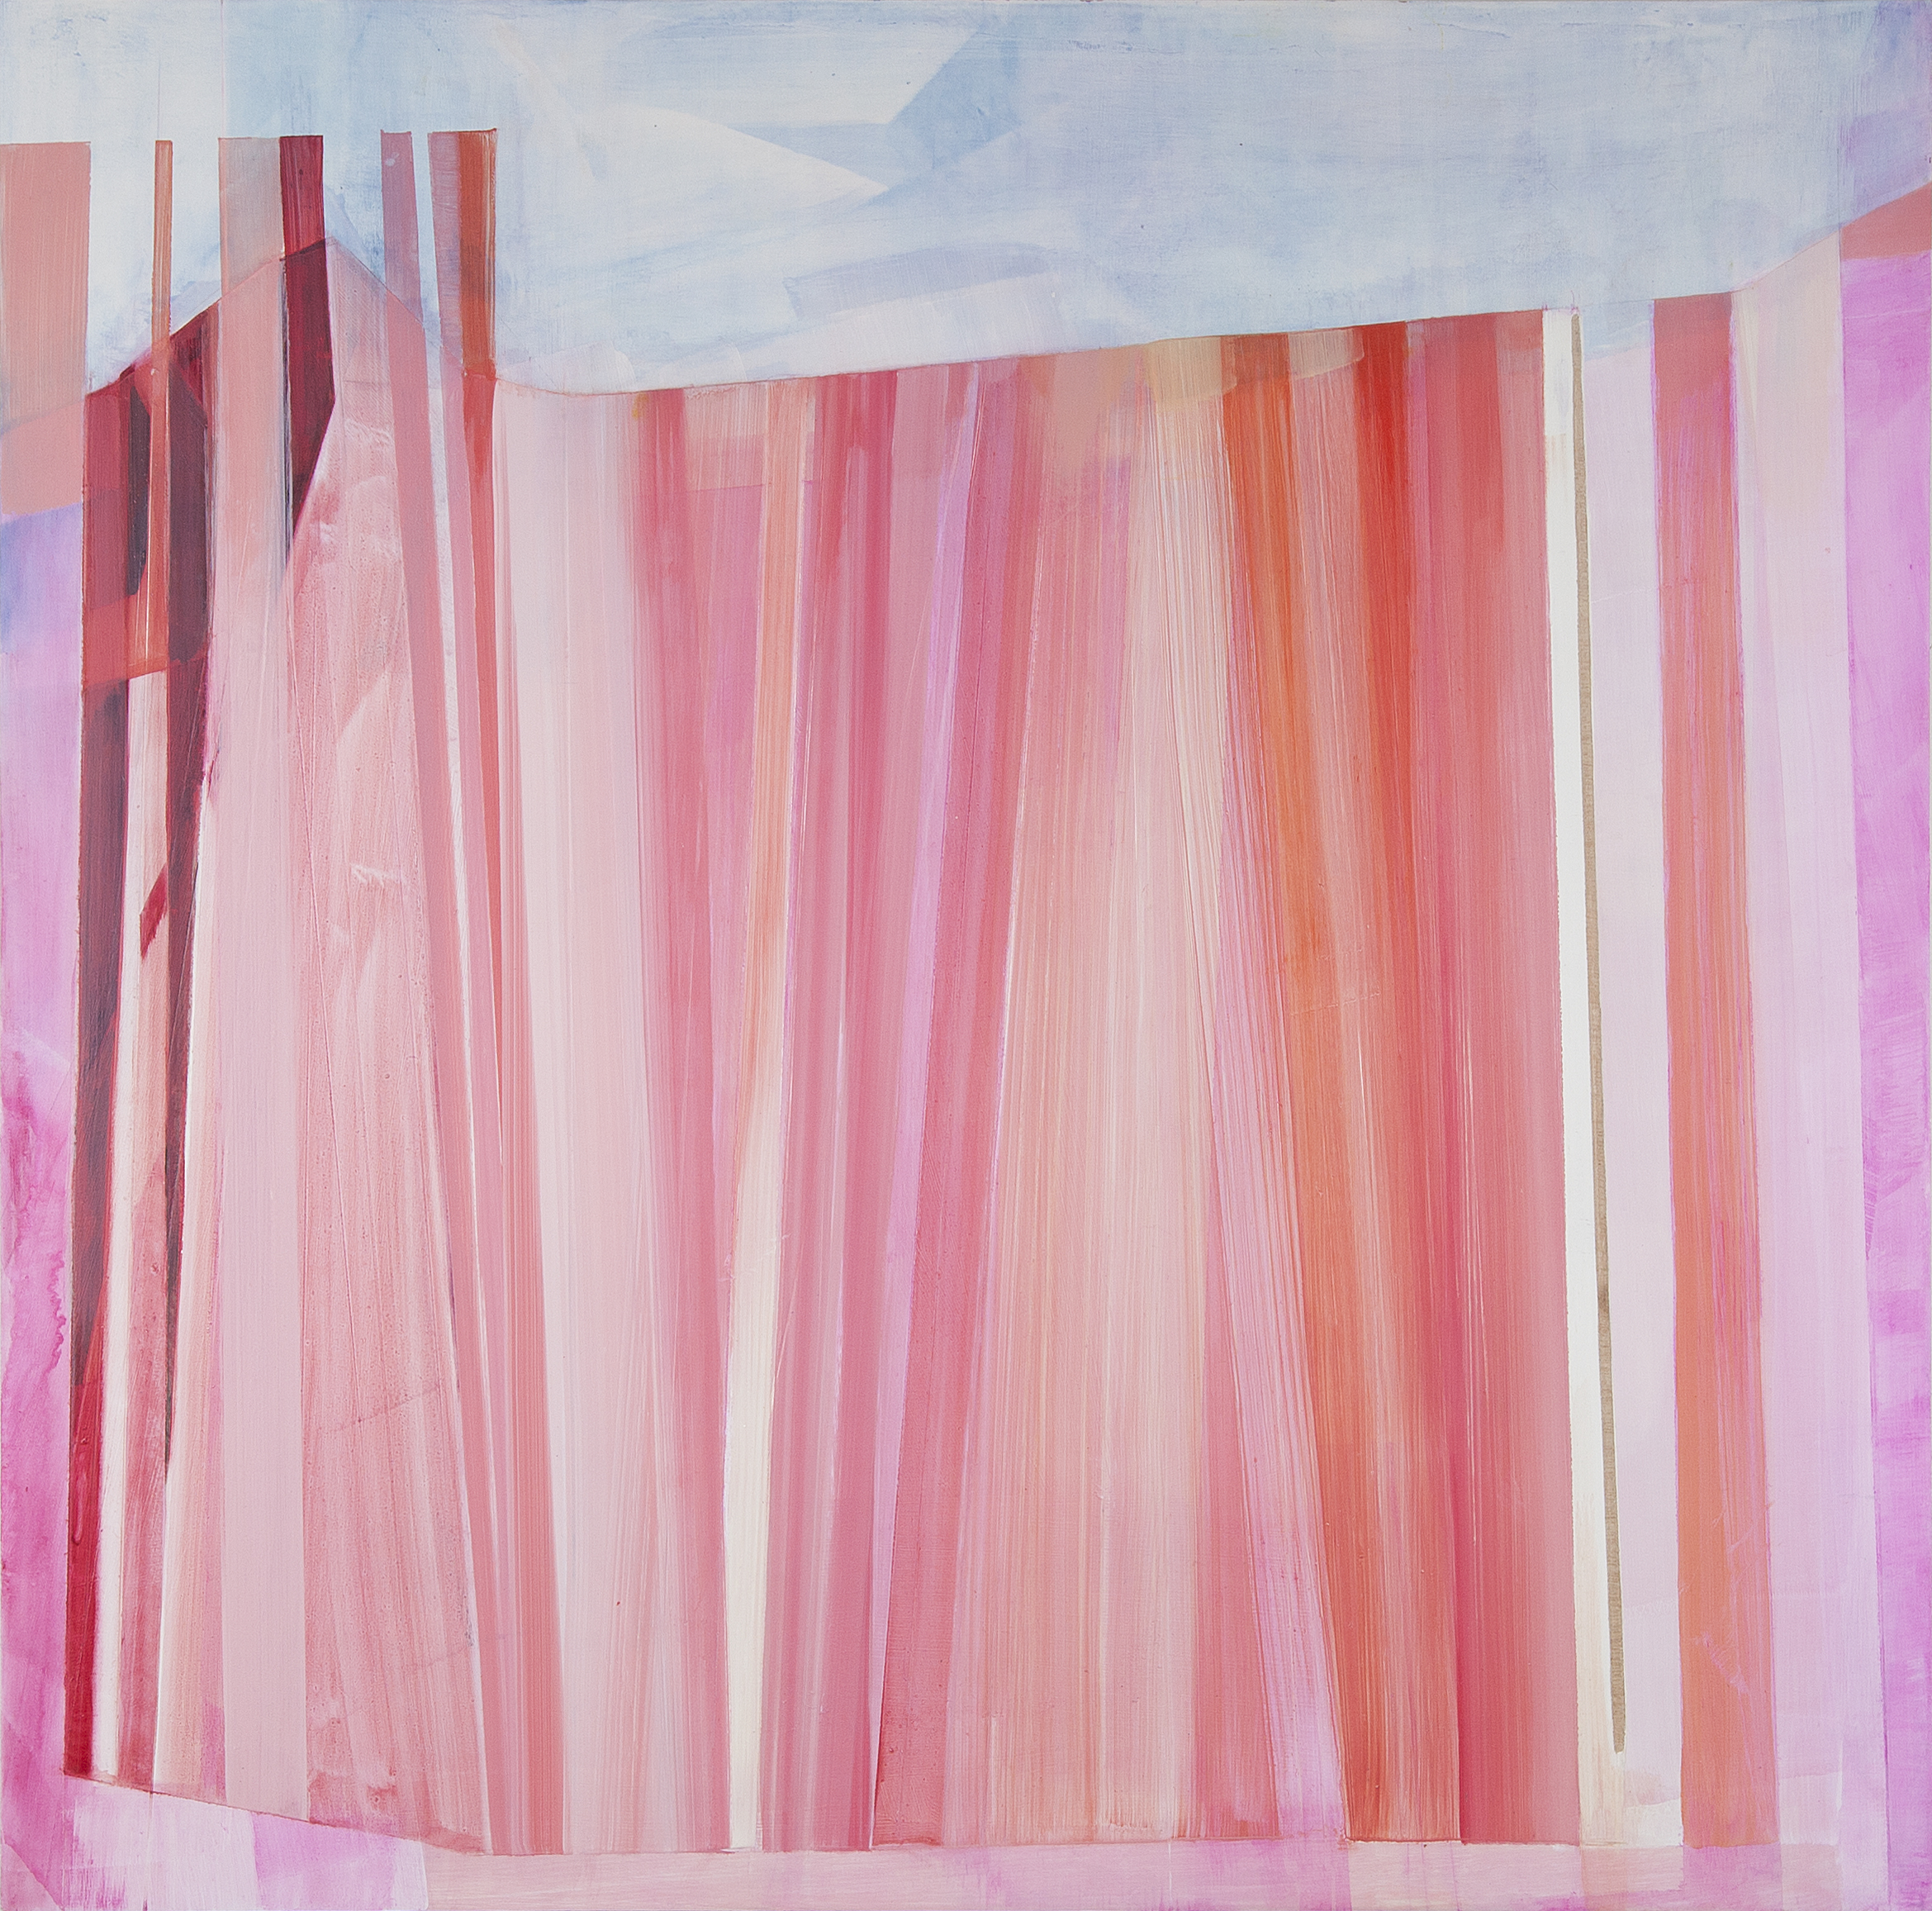 Untitled (pink), 2013